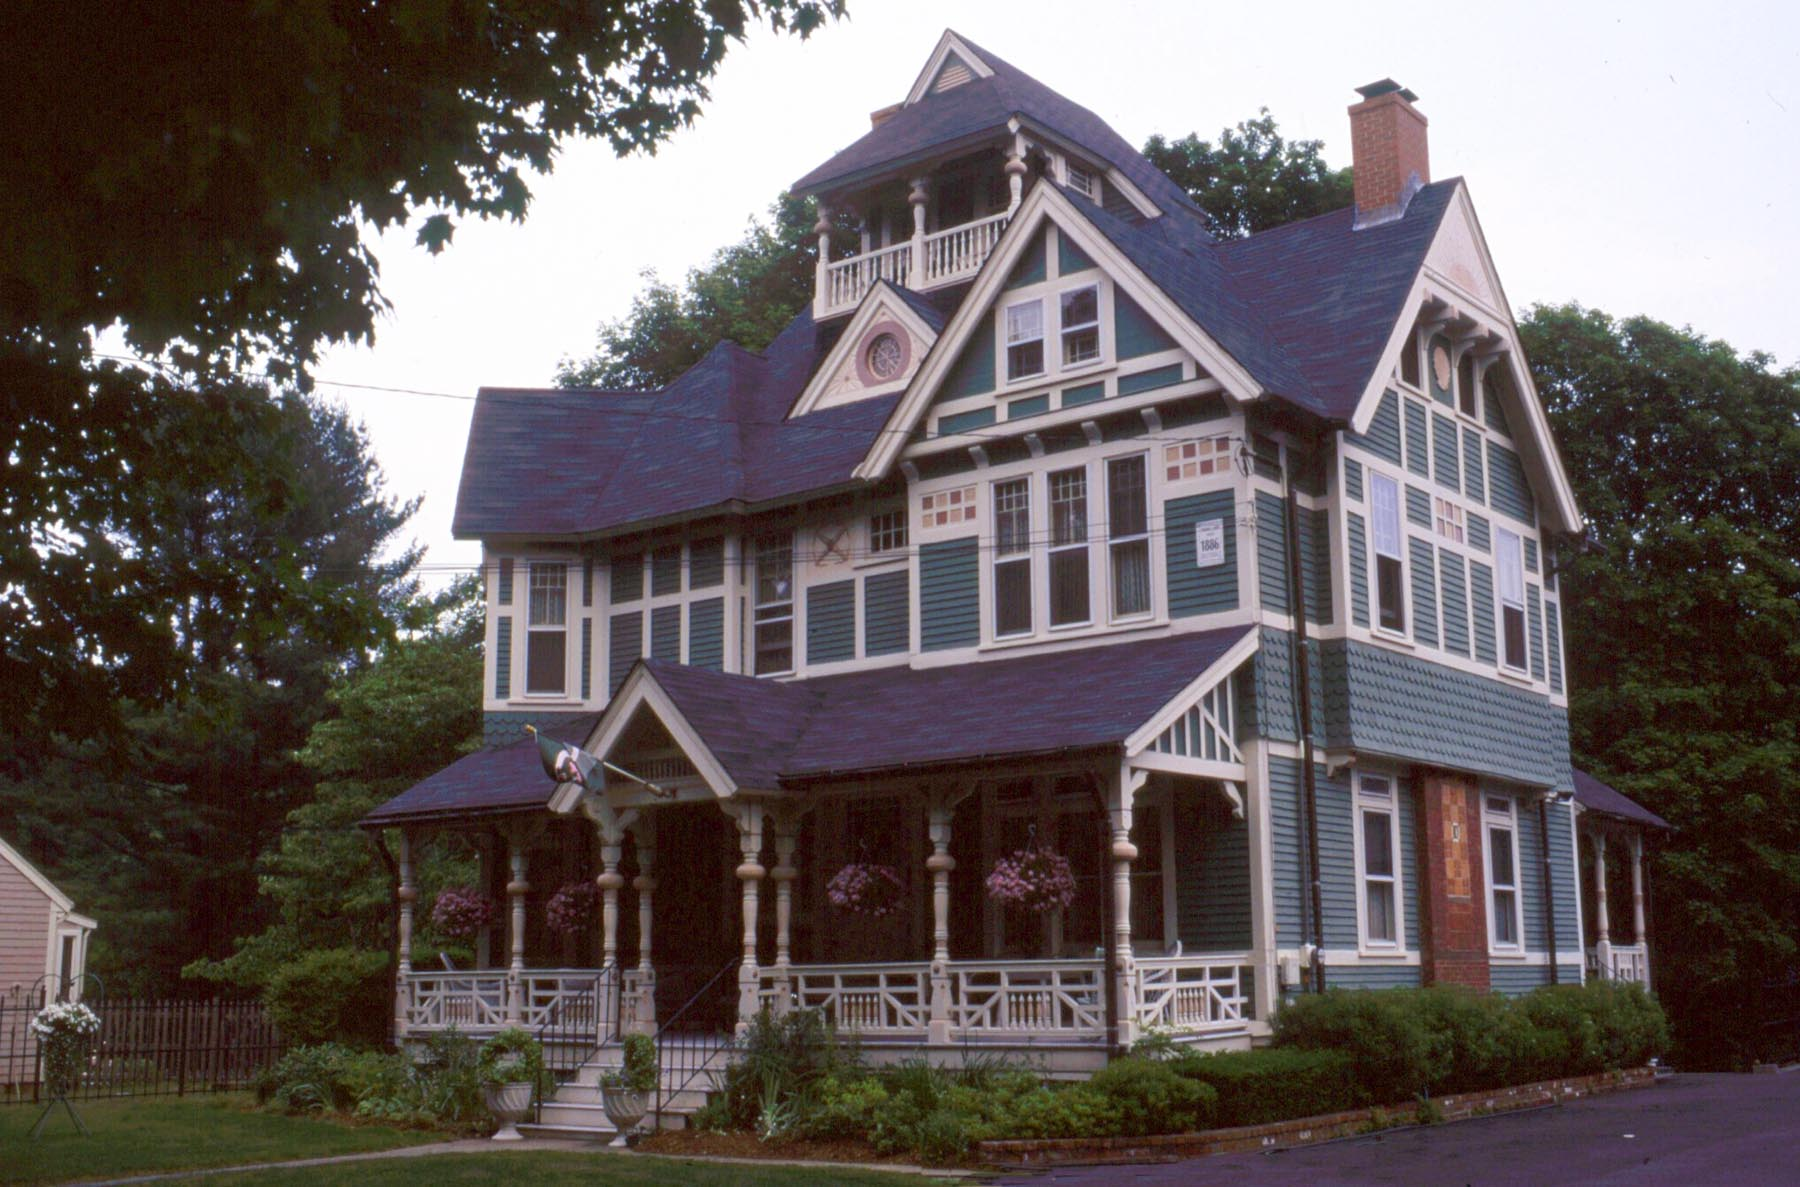 The best example of Stick Style architecture in Worcester, Massachusetts is located on Fruit Street